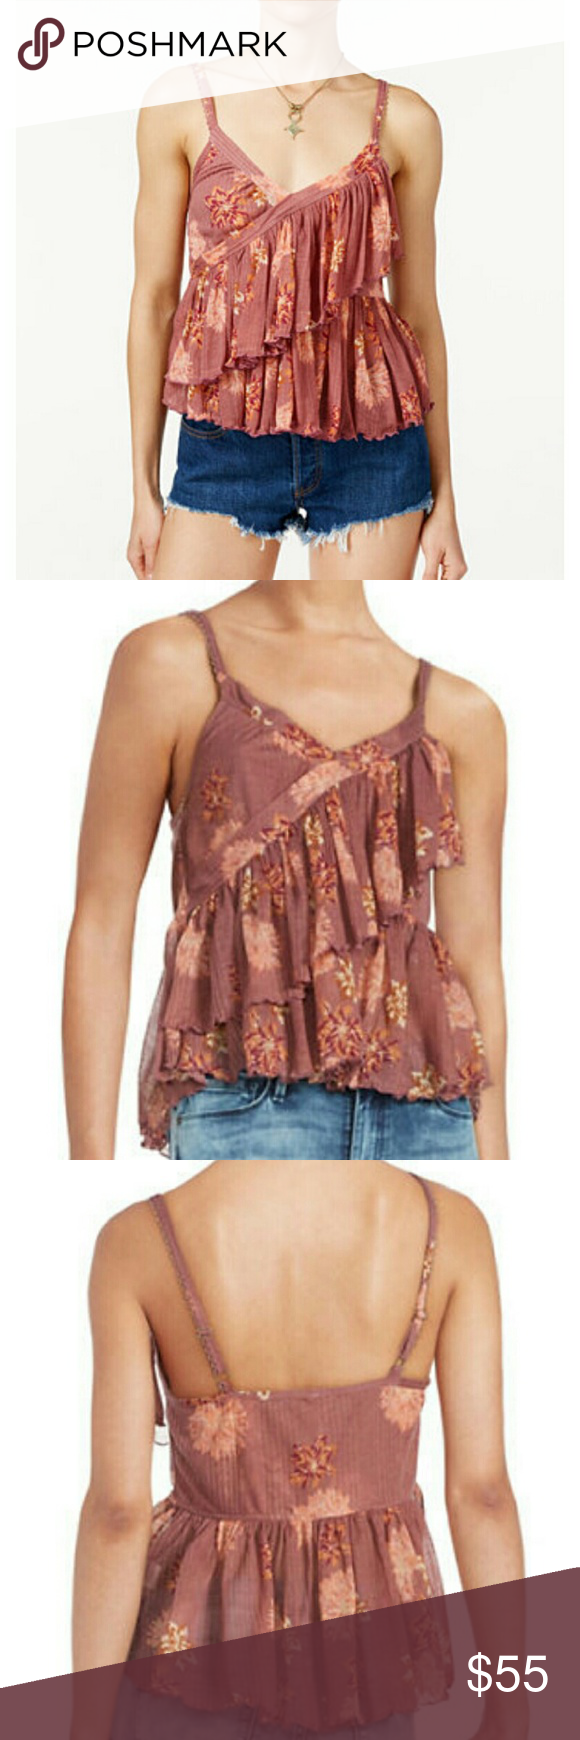 NWT Free People Tiered Flowy Blouse Gorgeous lightweight blouse with tiered flowy layers. Adjustable straps. Feel free to make an offer! Free People Tops Tank Tops